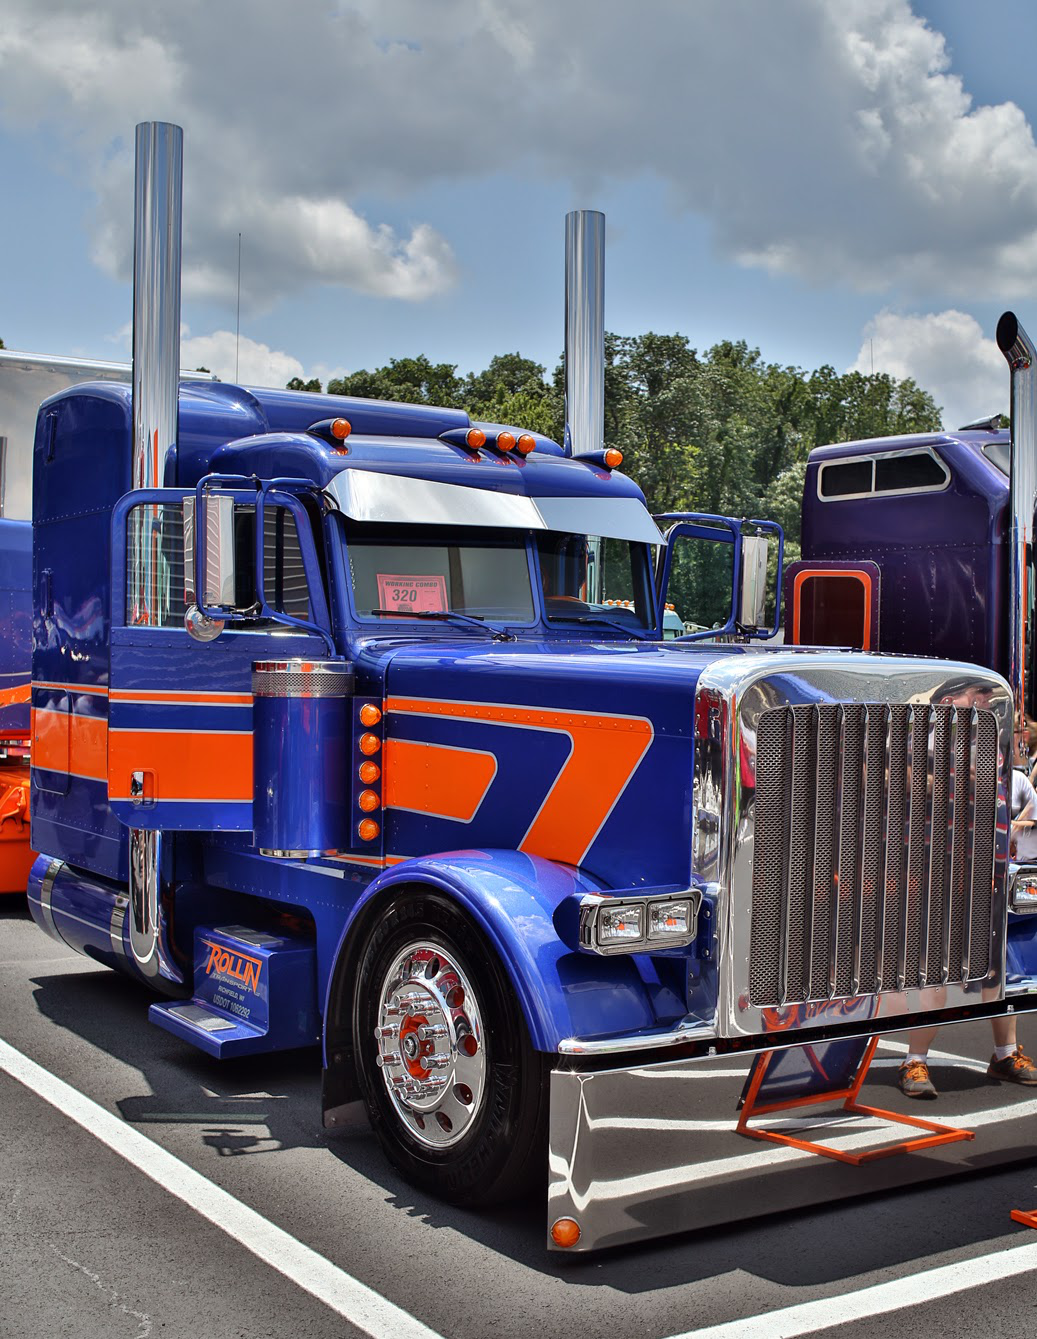 This 2013 Peterbilt 389 and matching 2010 MAC trailer — shown by Vinnio Diorio and Kevin Pascavis in the Wash & Show portion of the event — won Best of Show at last year's 75 Chrome Shop show.